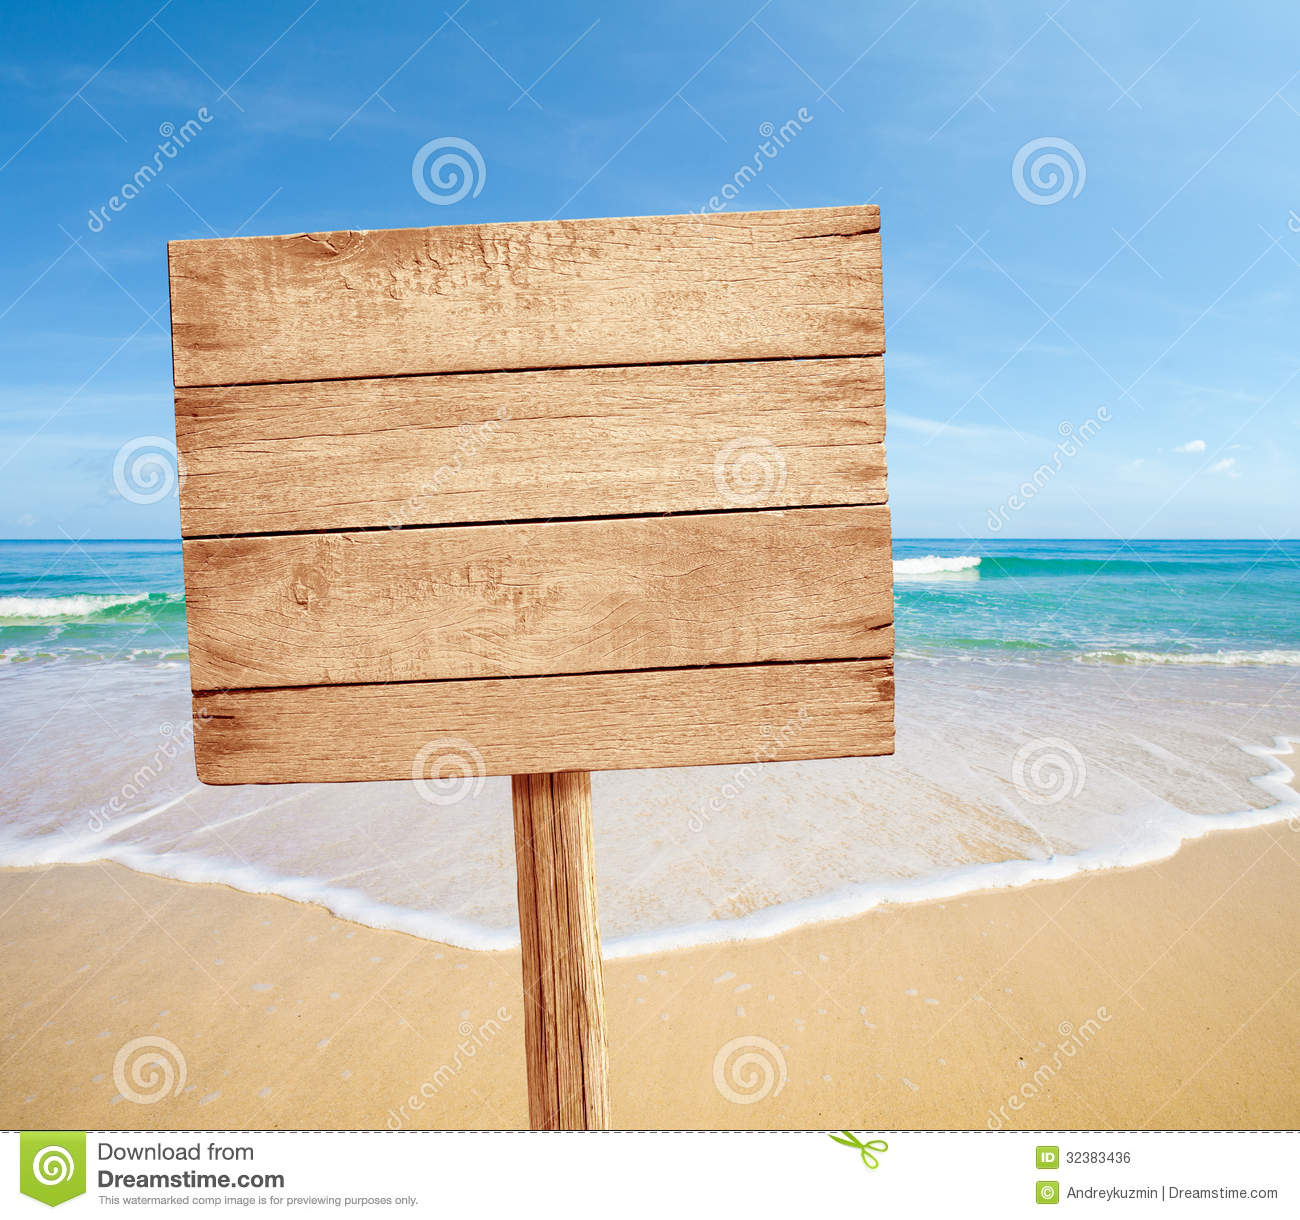 Wood Floor On Beach Sea And Blue Sky For Background Stock: Wood Sign On Sea Beach Royalty Free Stock Image